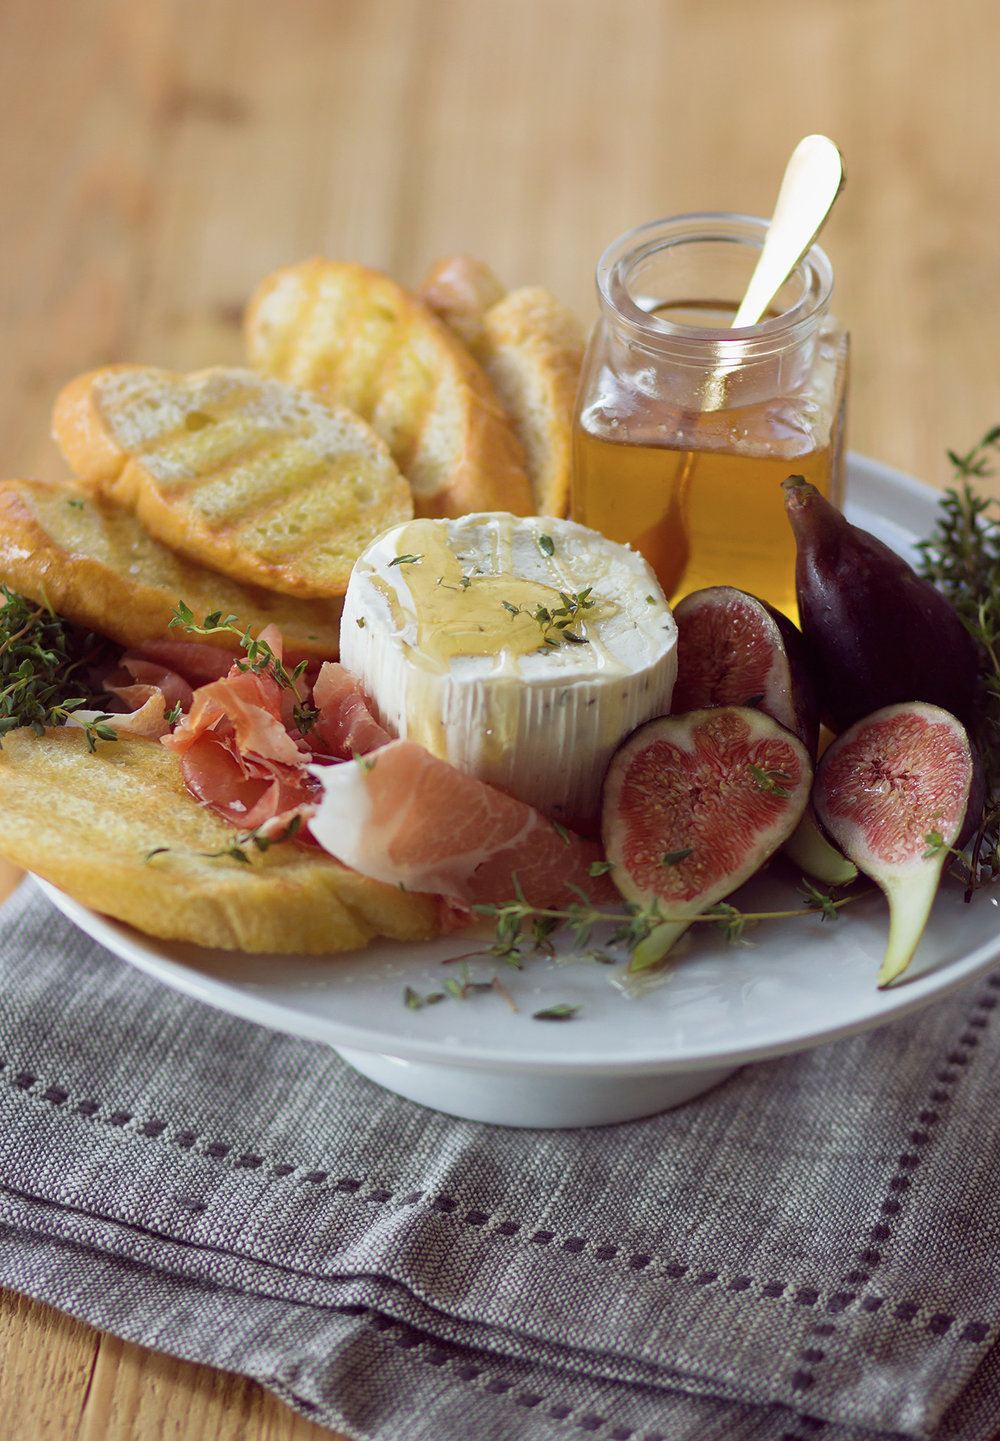 boursin-fig-cheese-plate.jpg